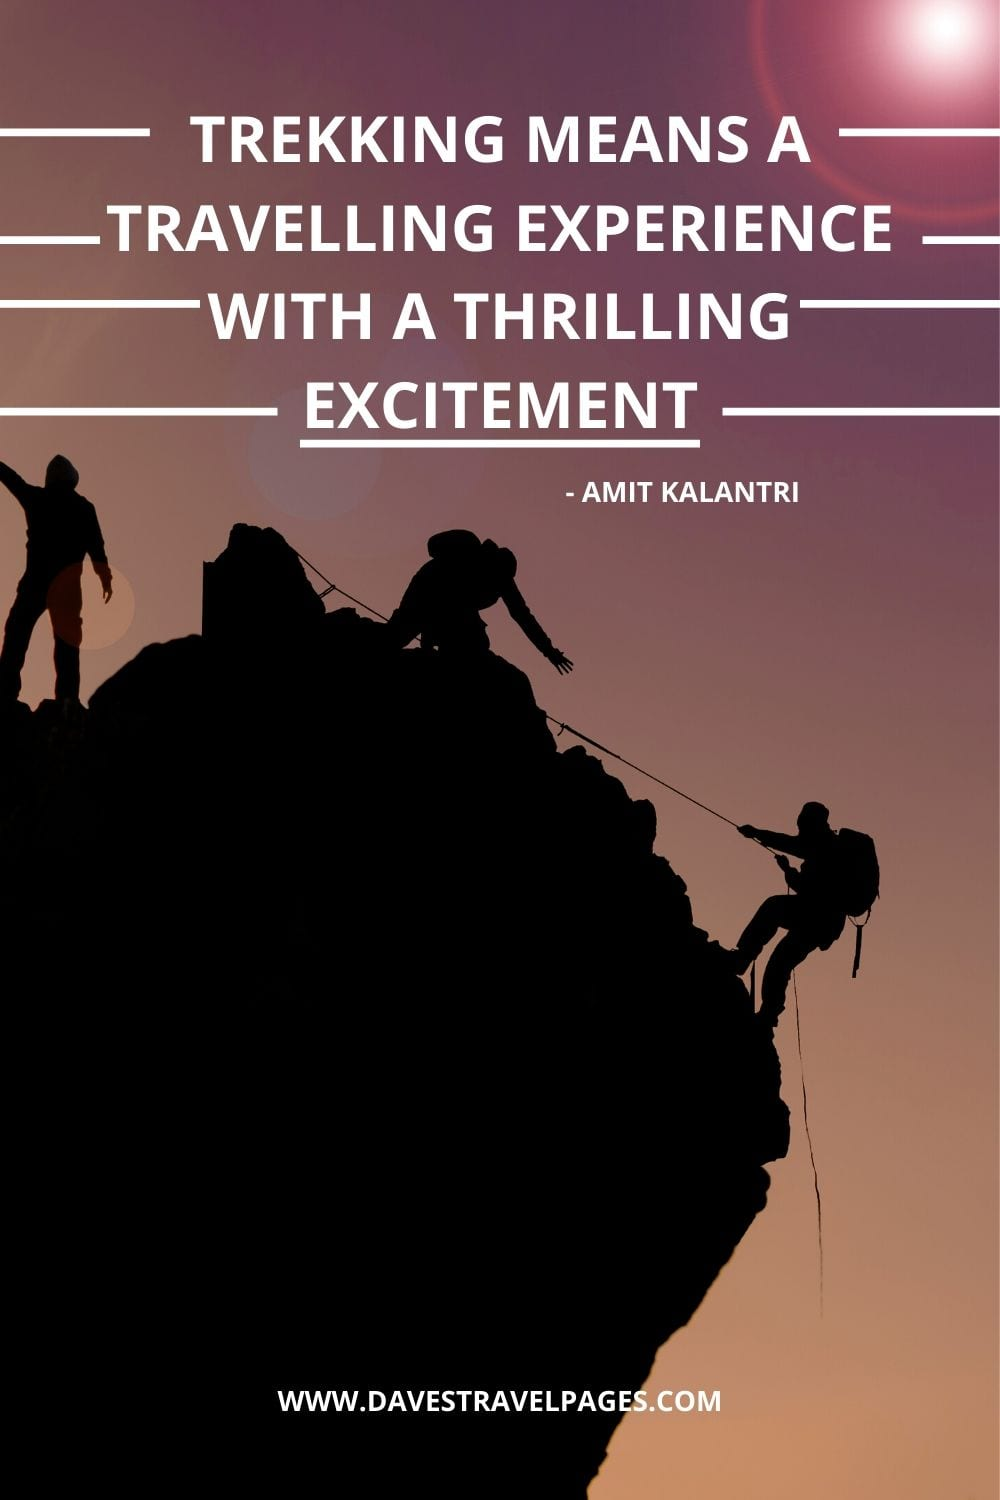 Trekking and Travel Quotes: Trekking means a travelling experience with a thrilling excitement - Amit Kalantri